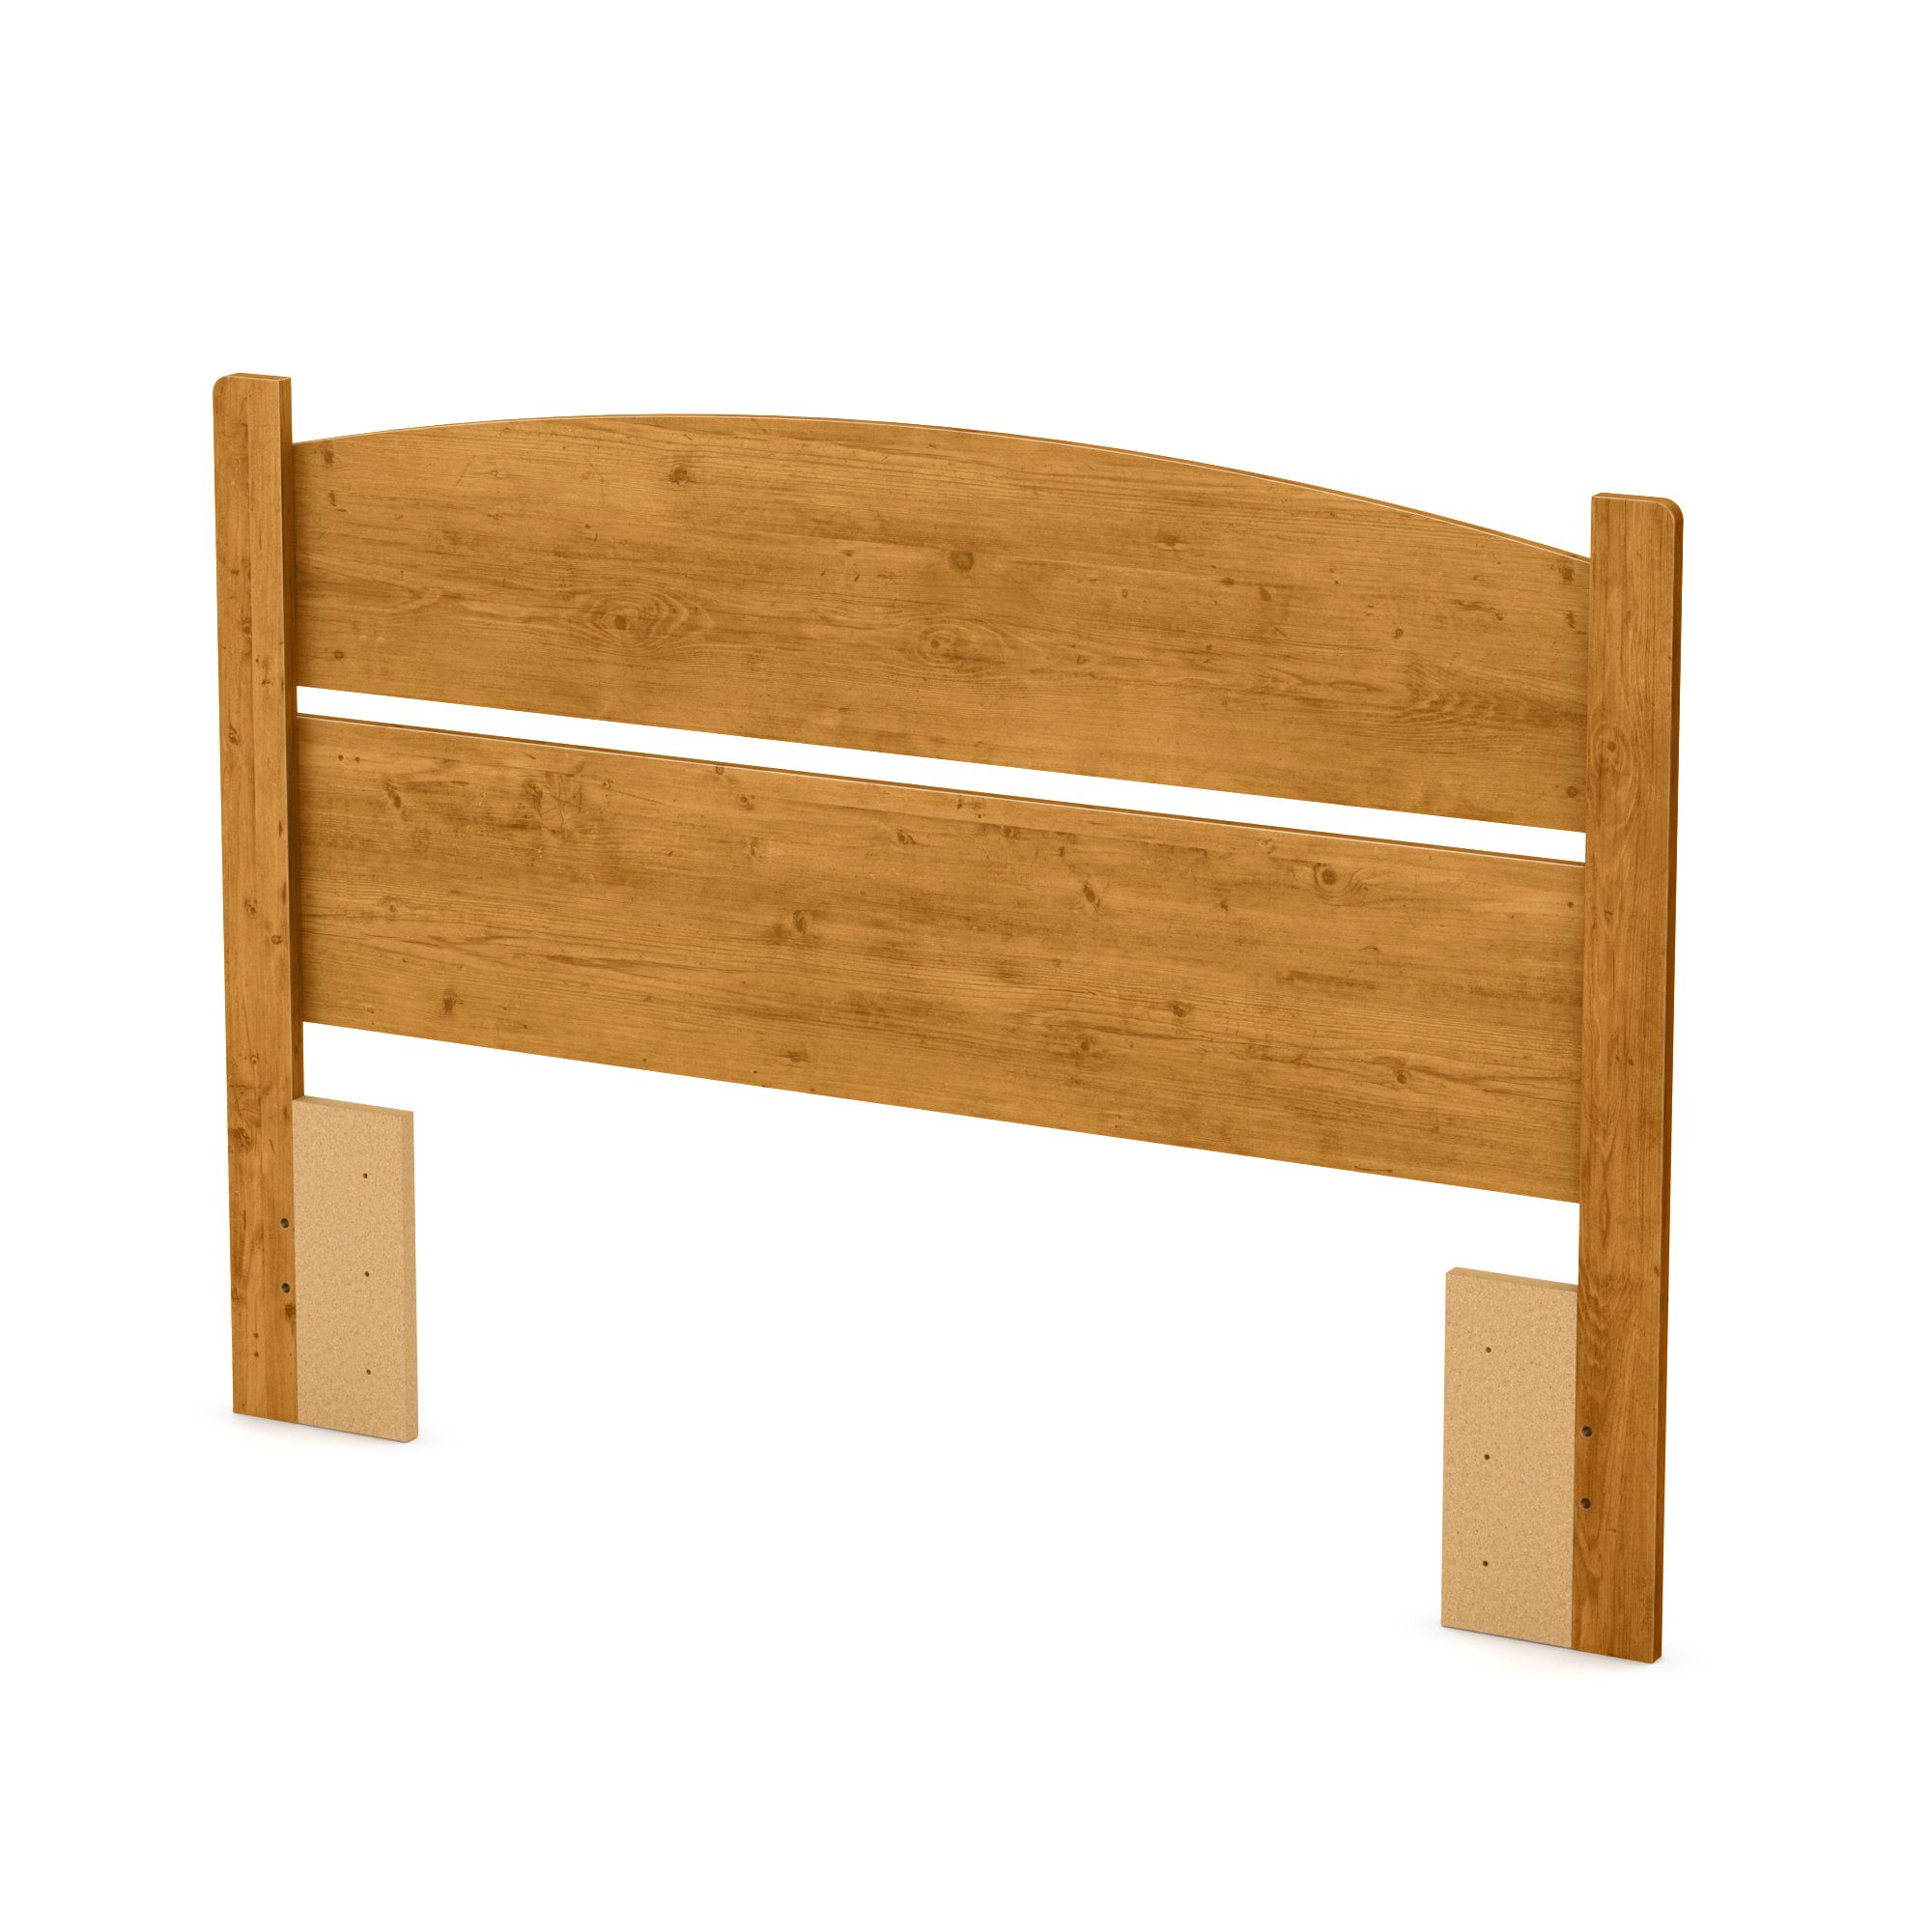 South Shore Libra Full Headboard, 54-Inch, Country Pine by South Shore